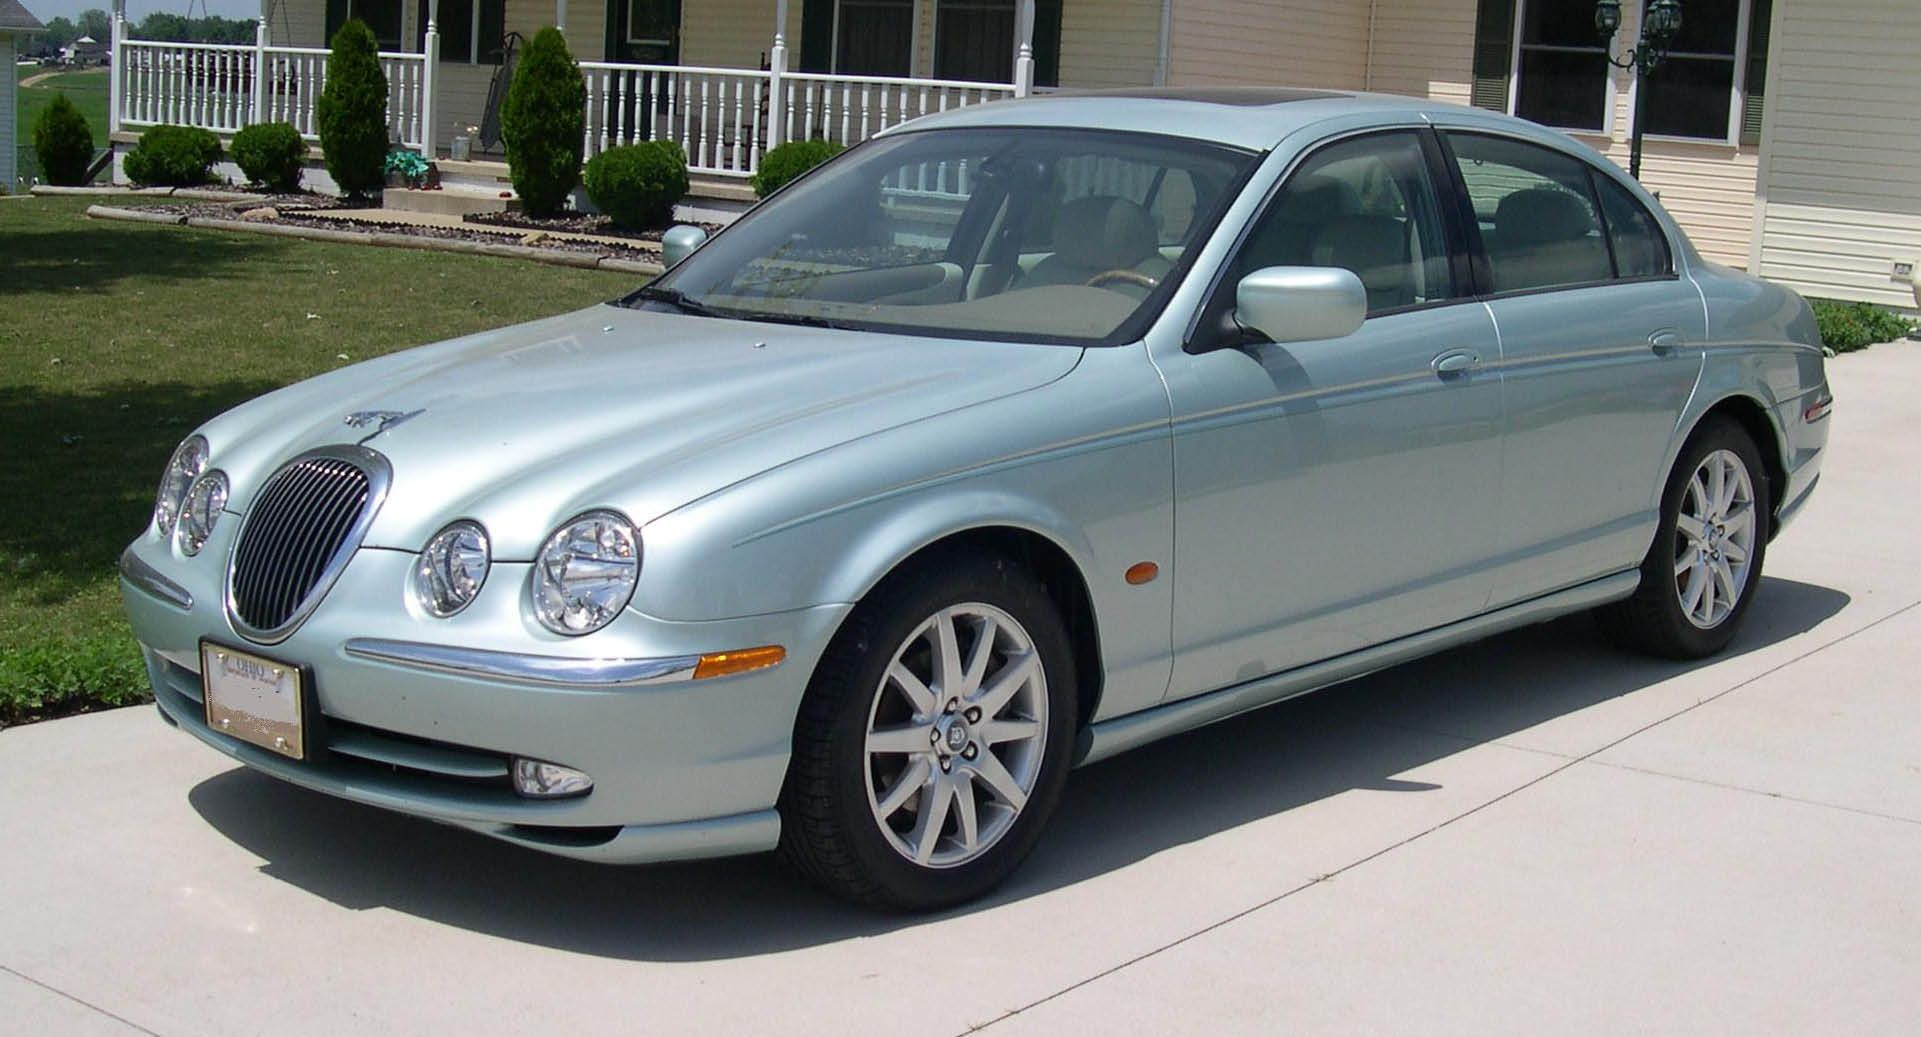 Good Between Ford Purchasing Jaguar In 1989 And Selling It In 2008 It Did Not  Earn Any Profit For The Dearborn Based Auto Manufacturer.